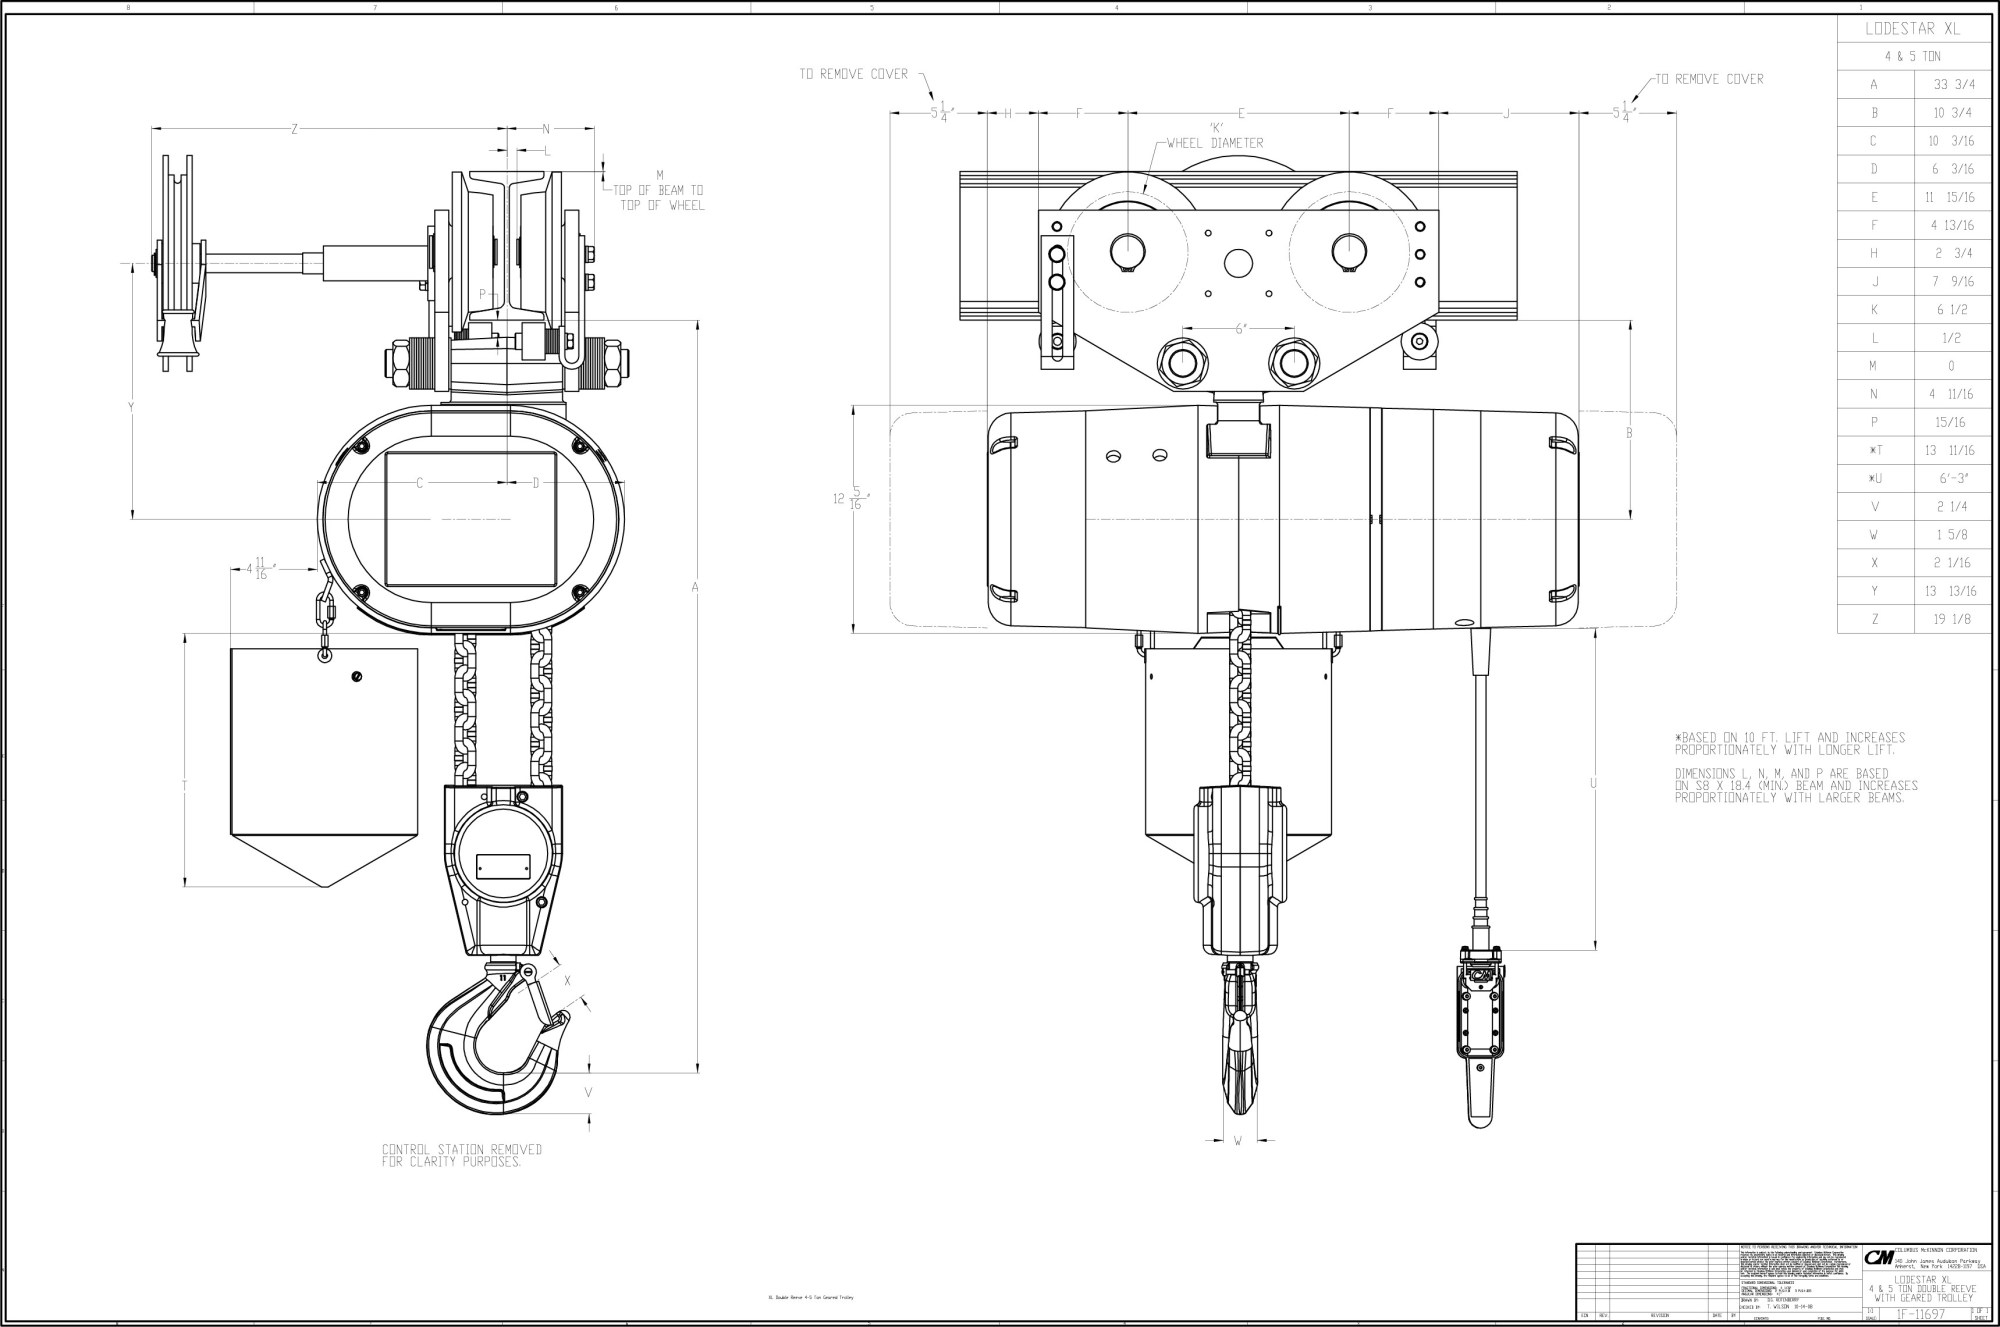 hight resolution of chain hoist reeving diagrams wiring diagram info chain hoist reeving diagrams